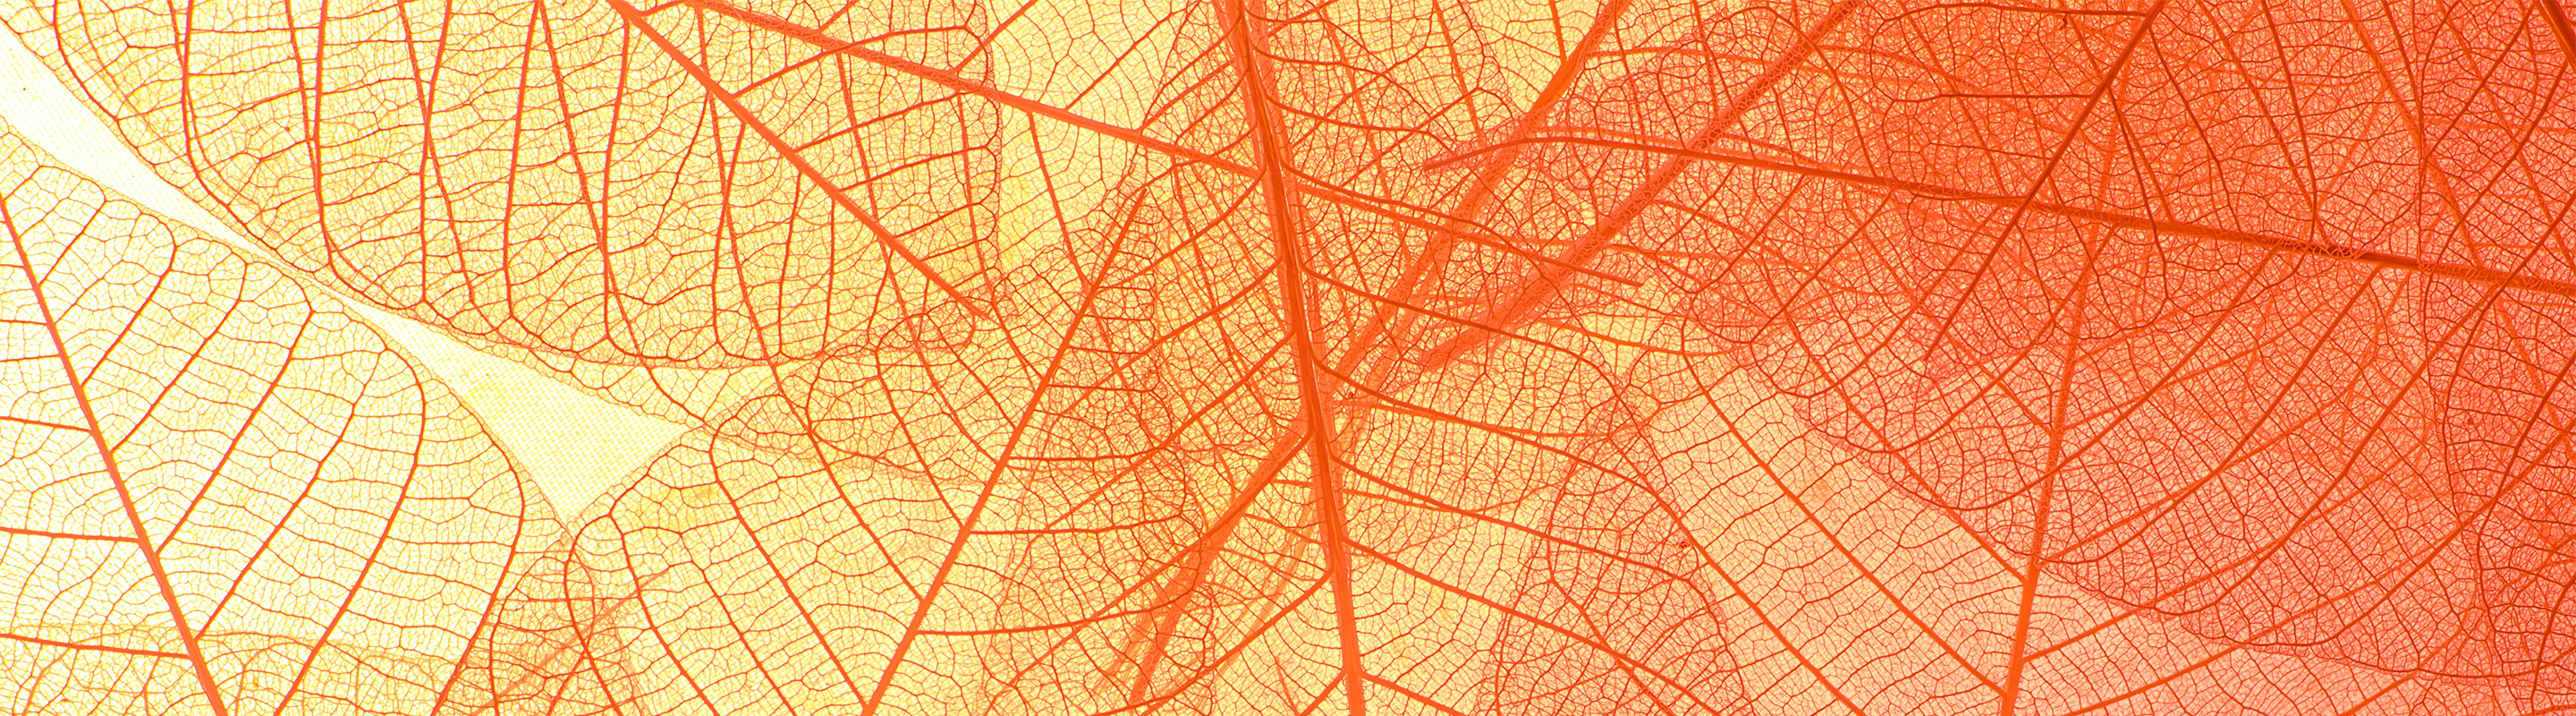 an artistic image of outlines of leaves in orange and red